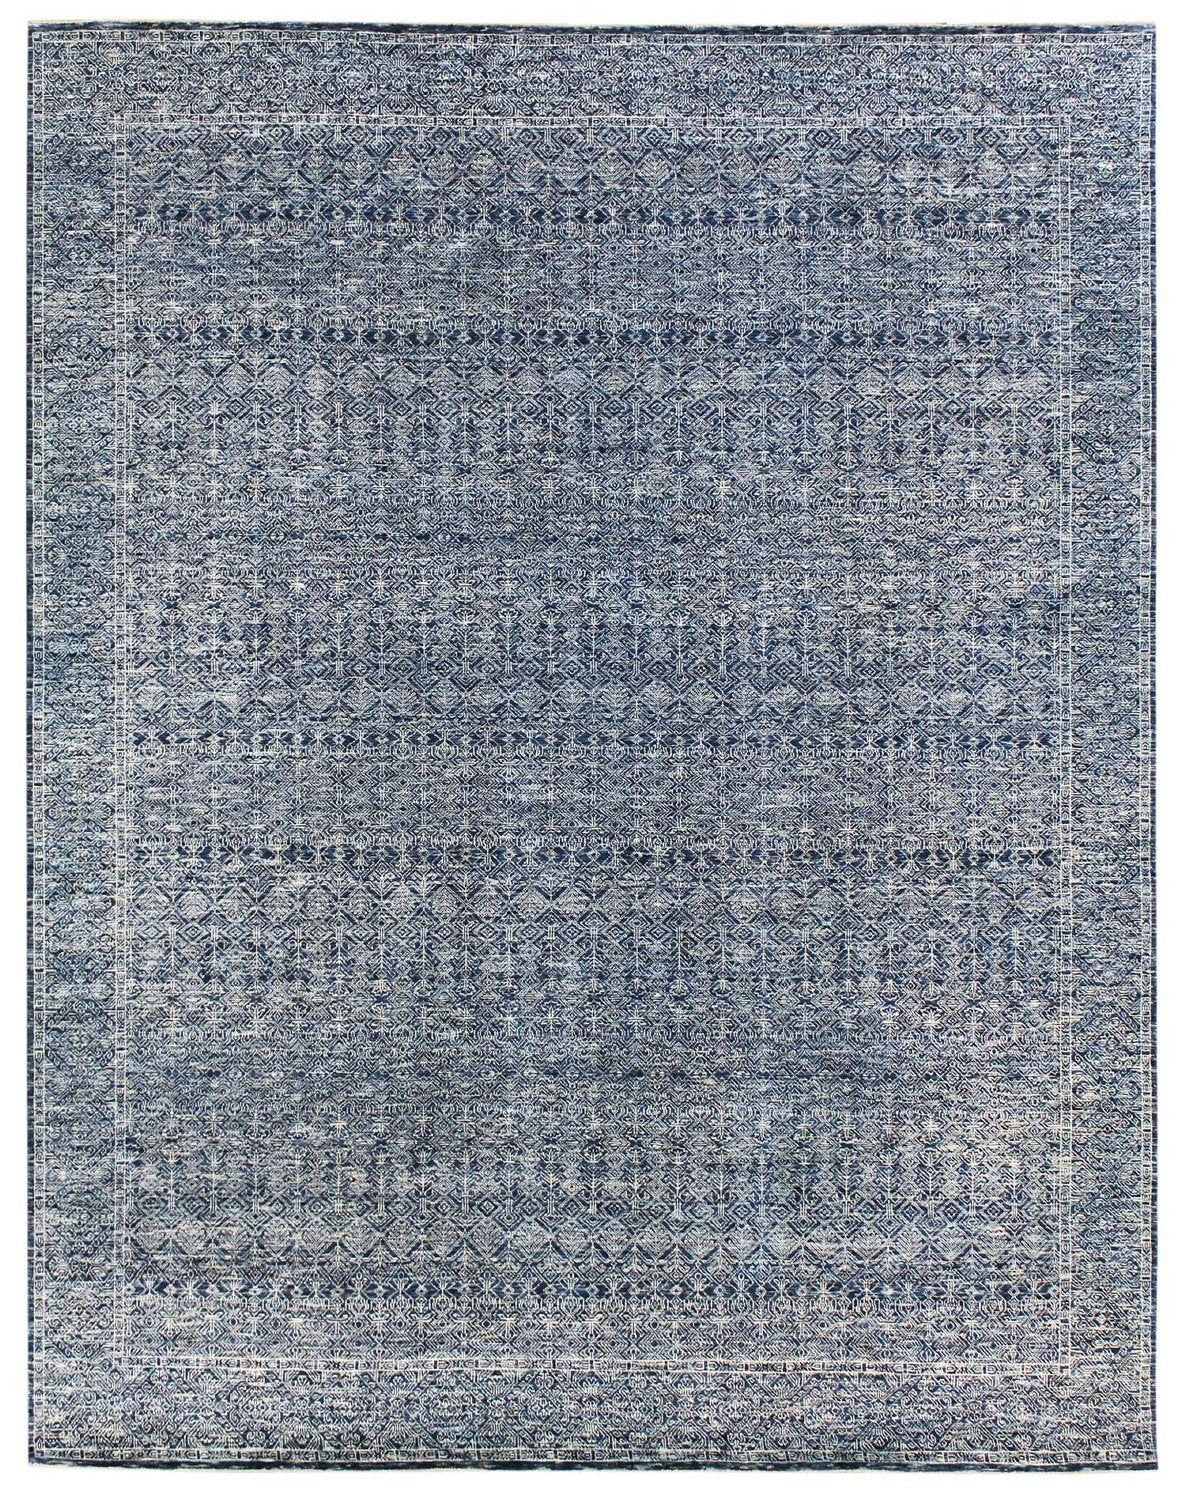 Age Handwoven Transitional Rug